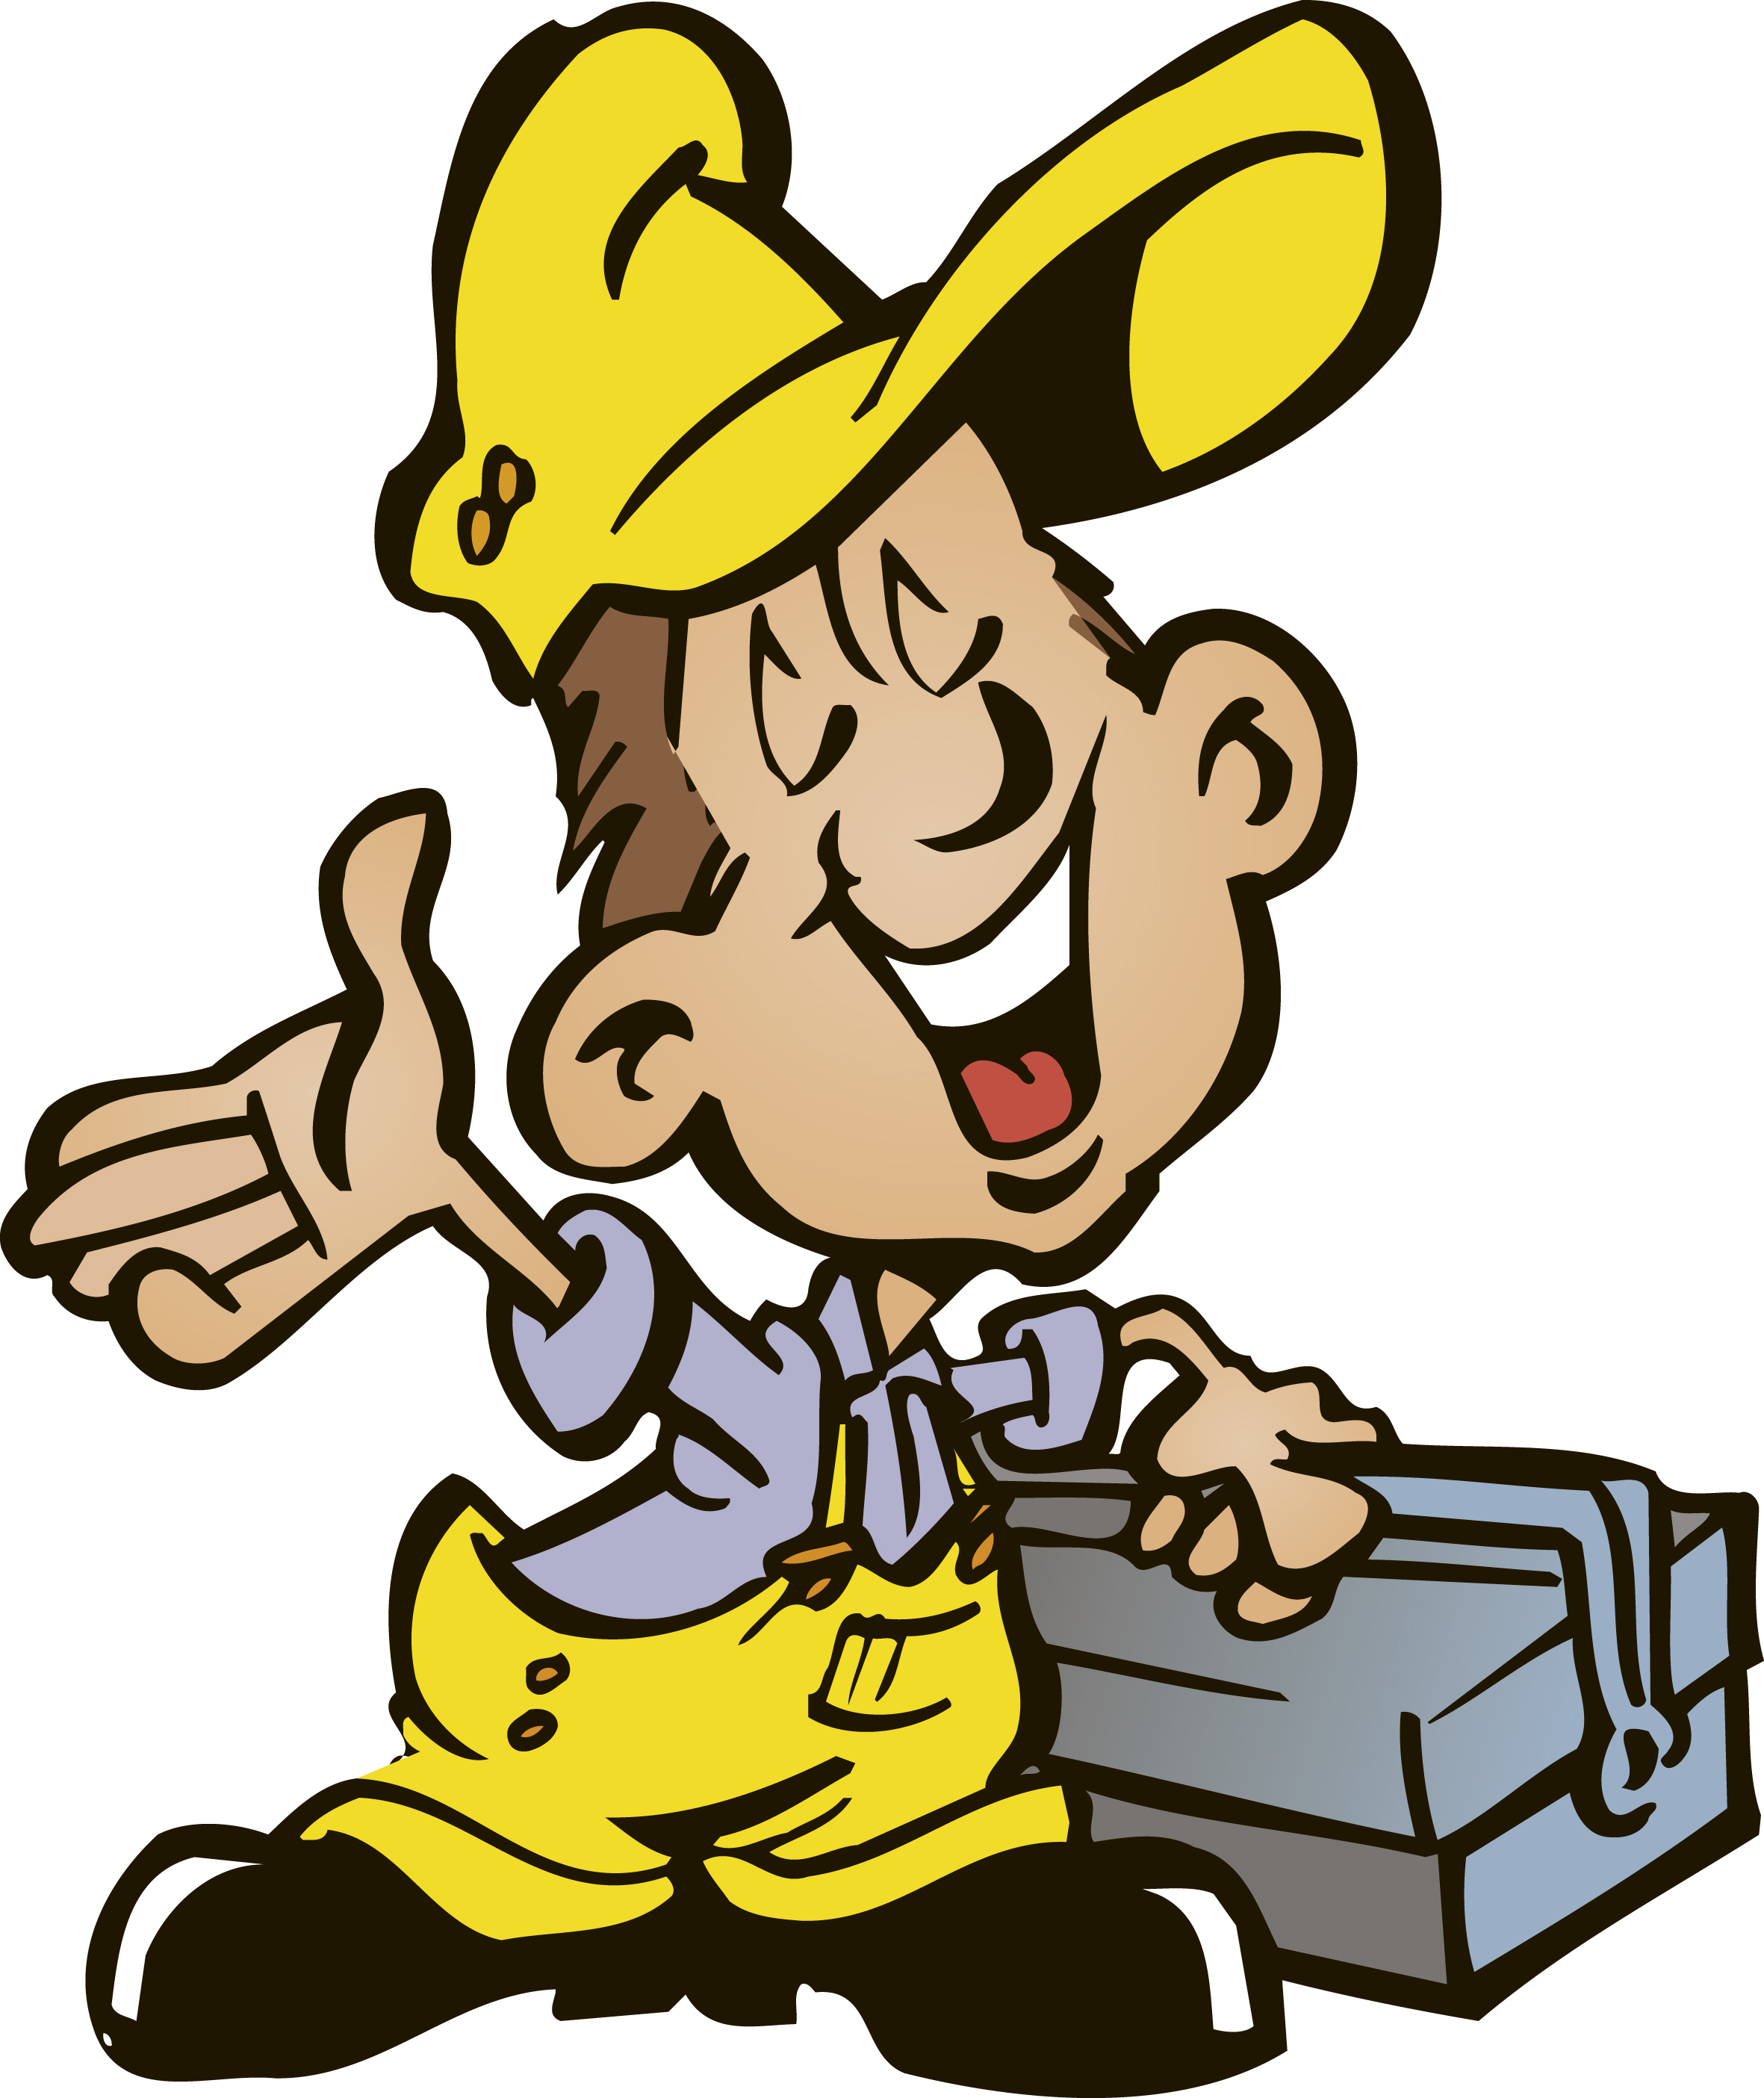 animated-handyman-image-0002